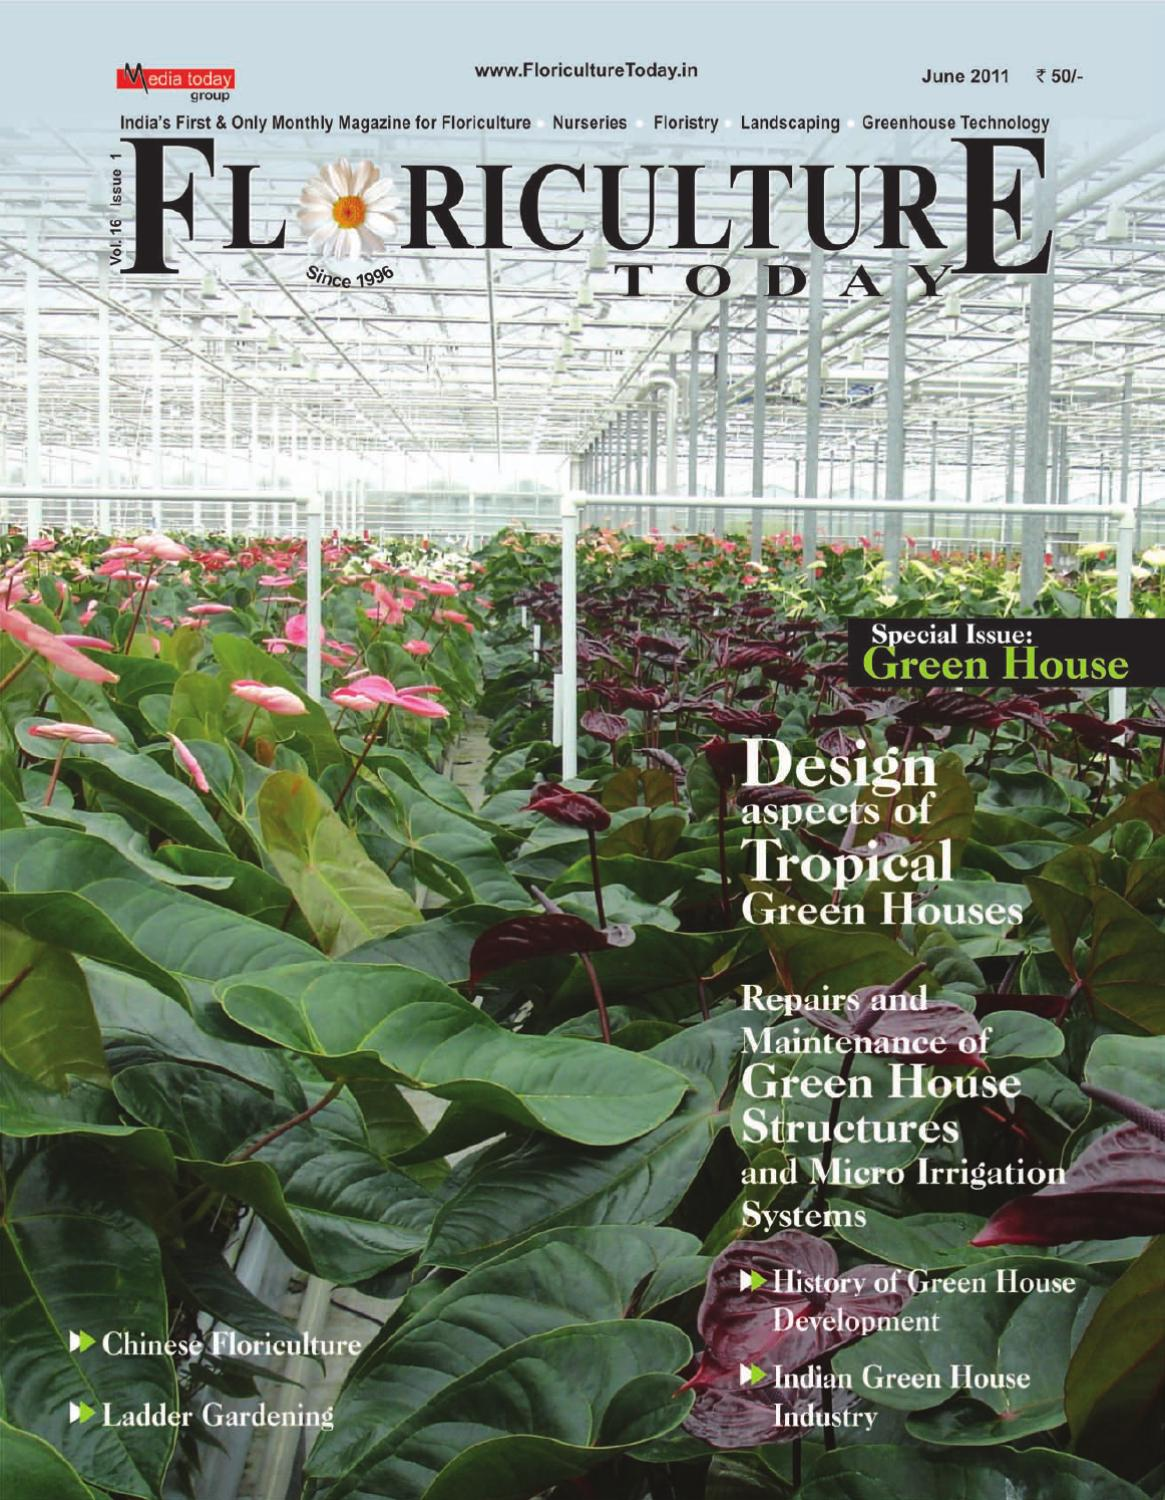 Starting a Greenhouse Business